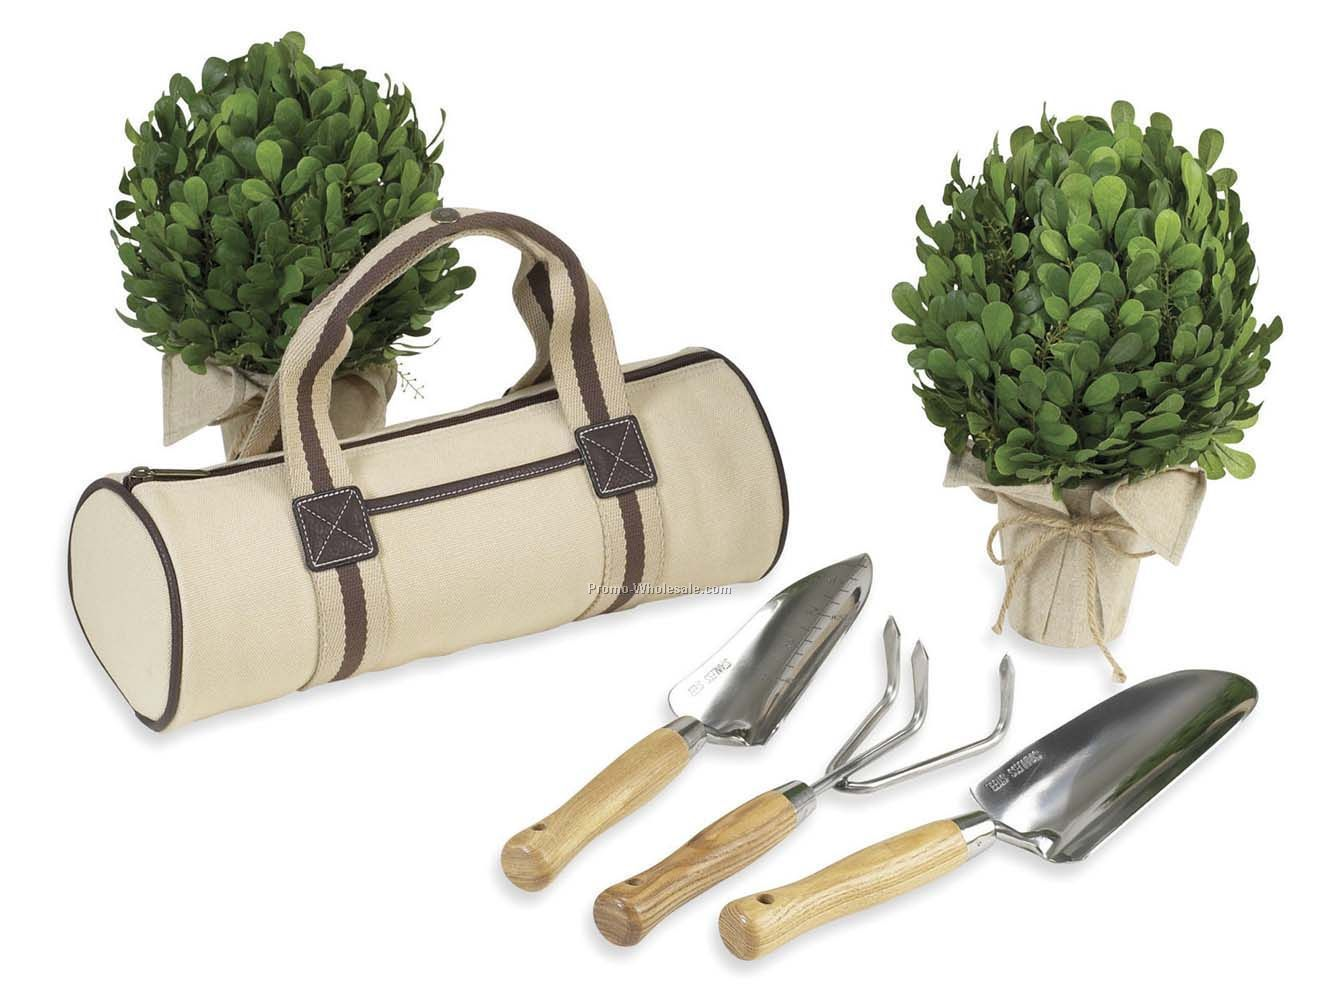 Dia weekender garden tool set wholesale china for Garden tools accessories